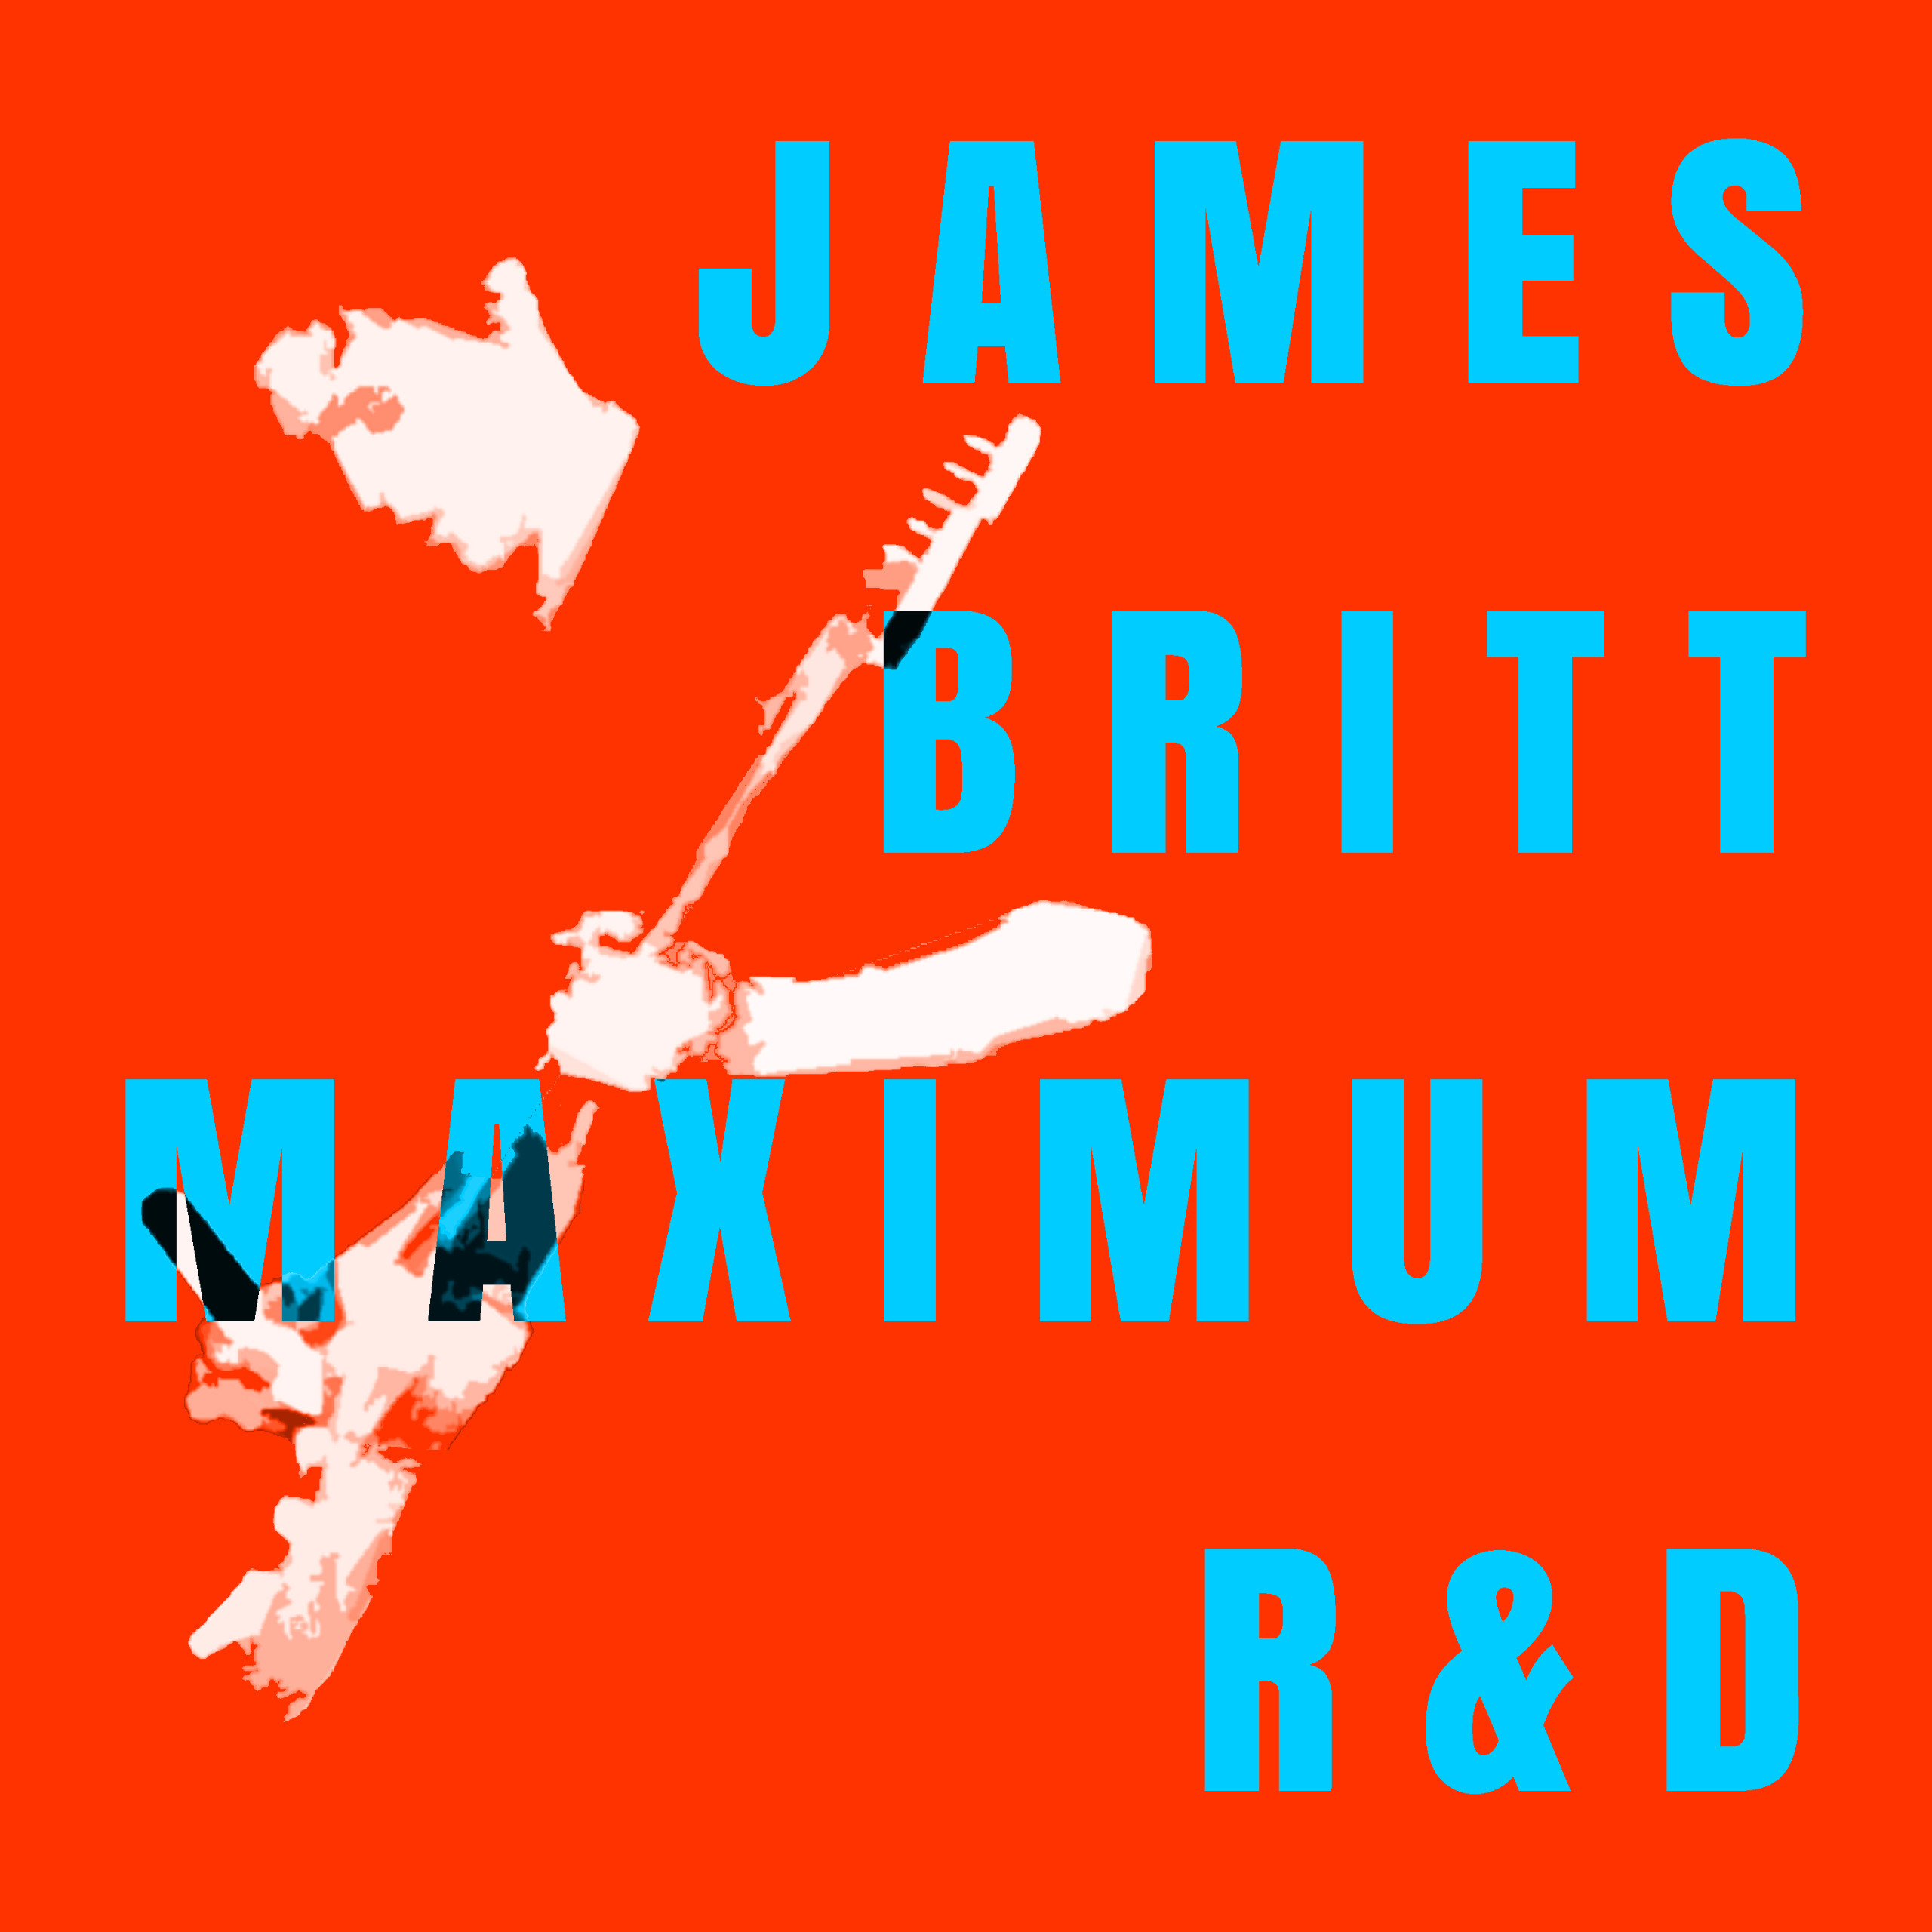 debut album songs, Maximum - jamesbritt | ello